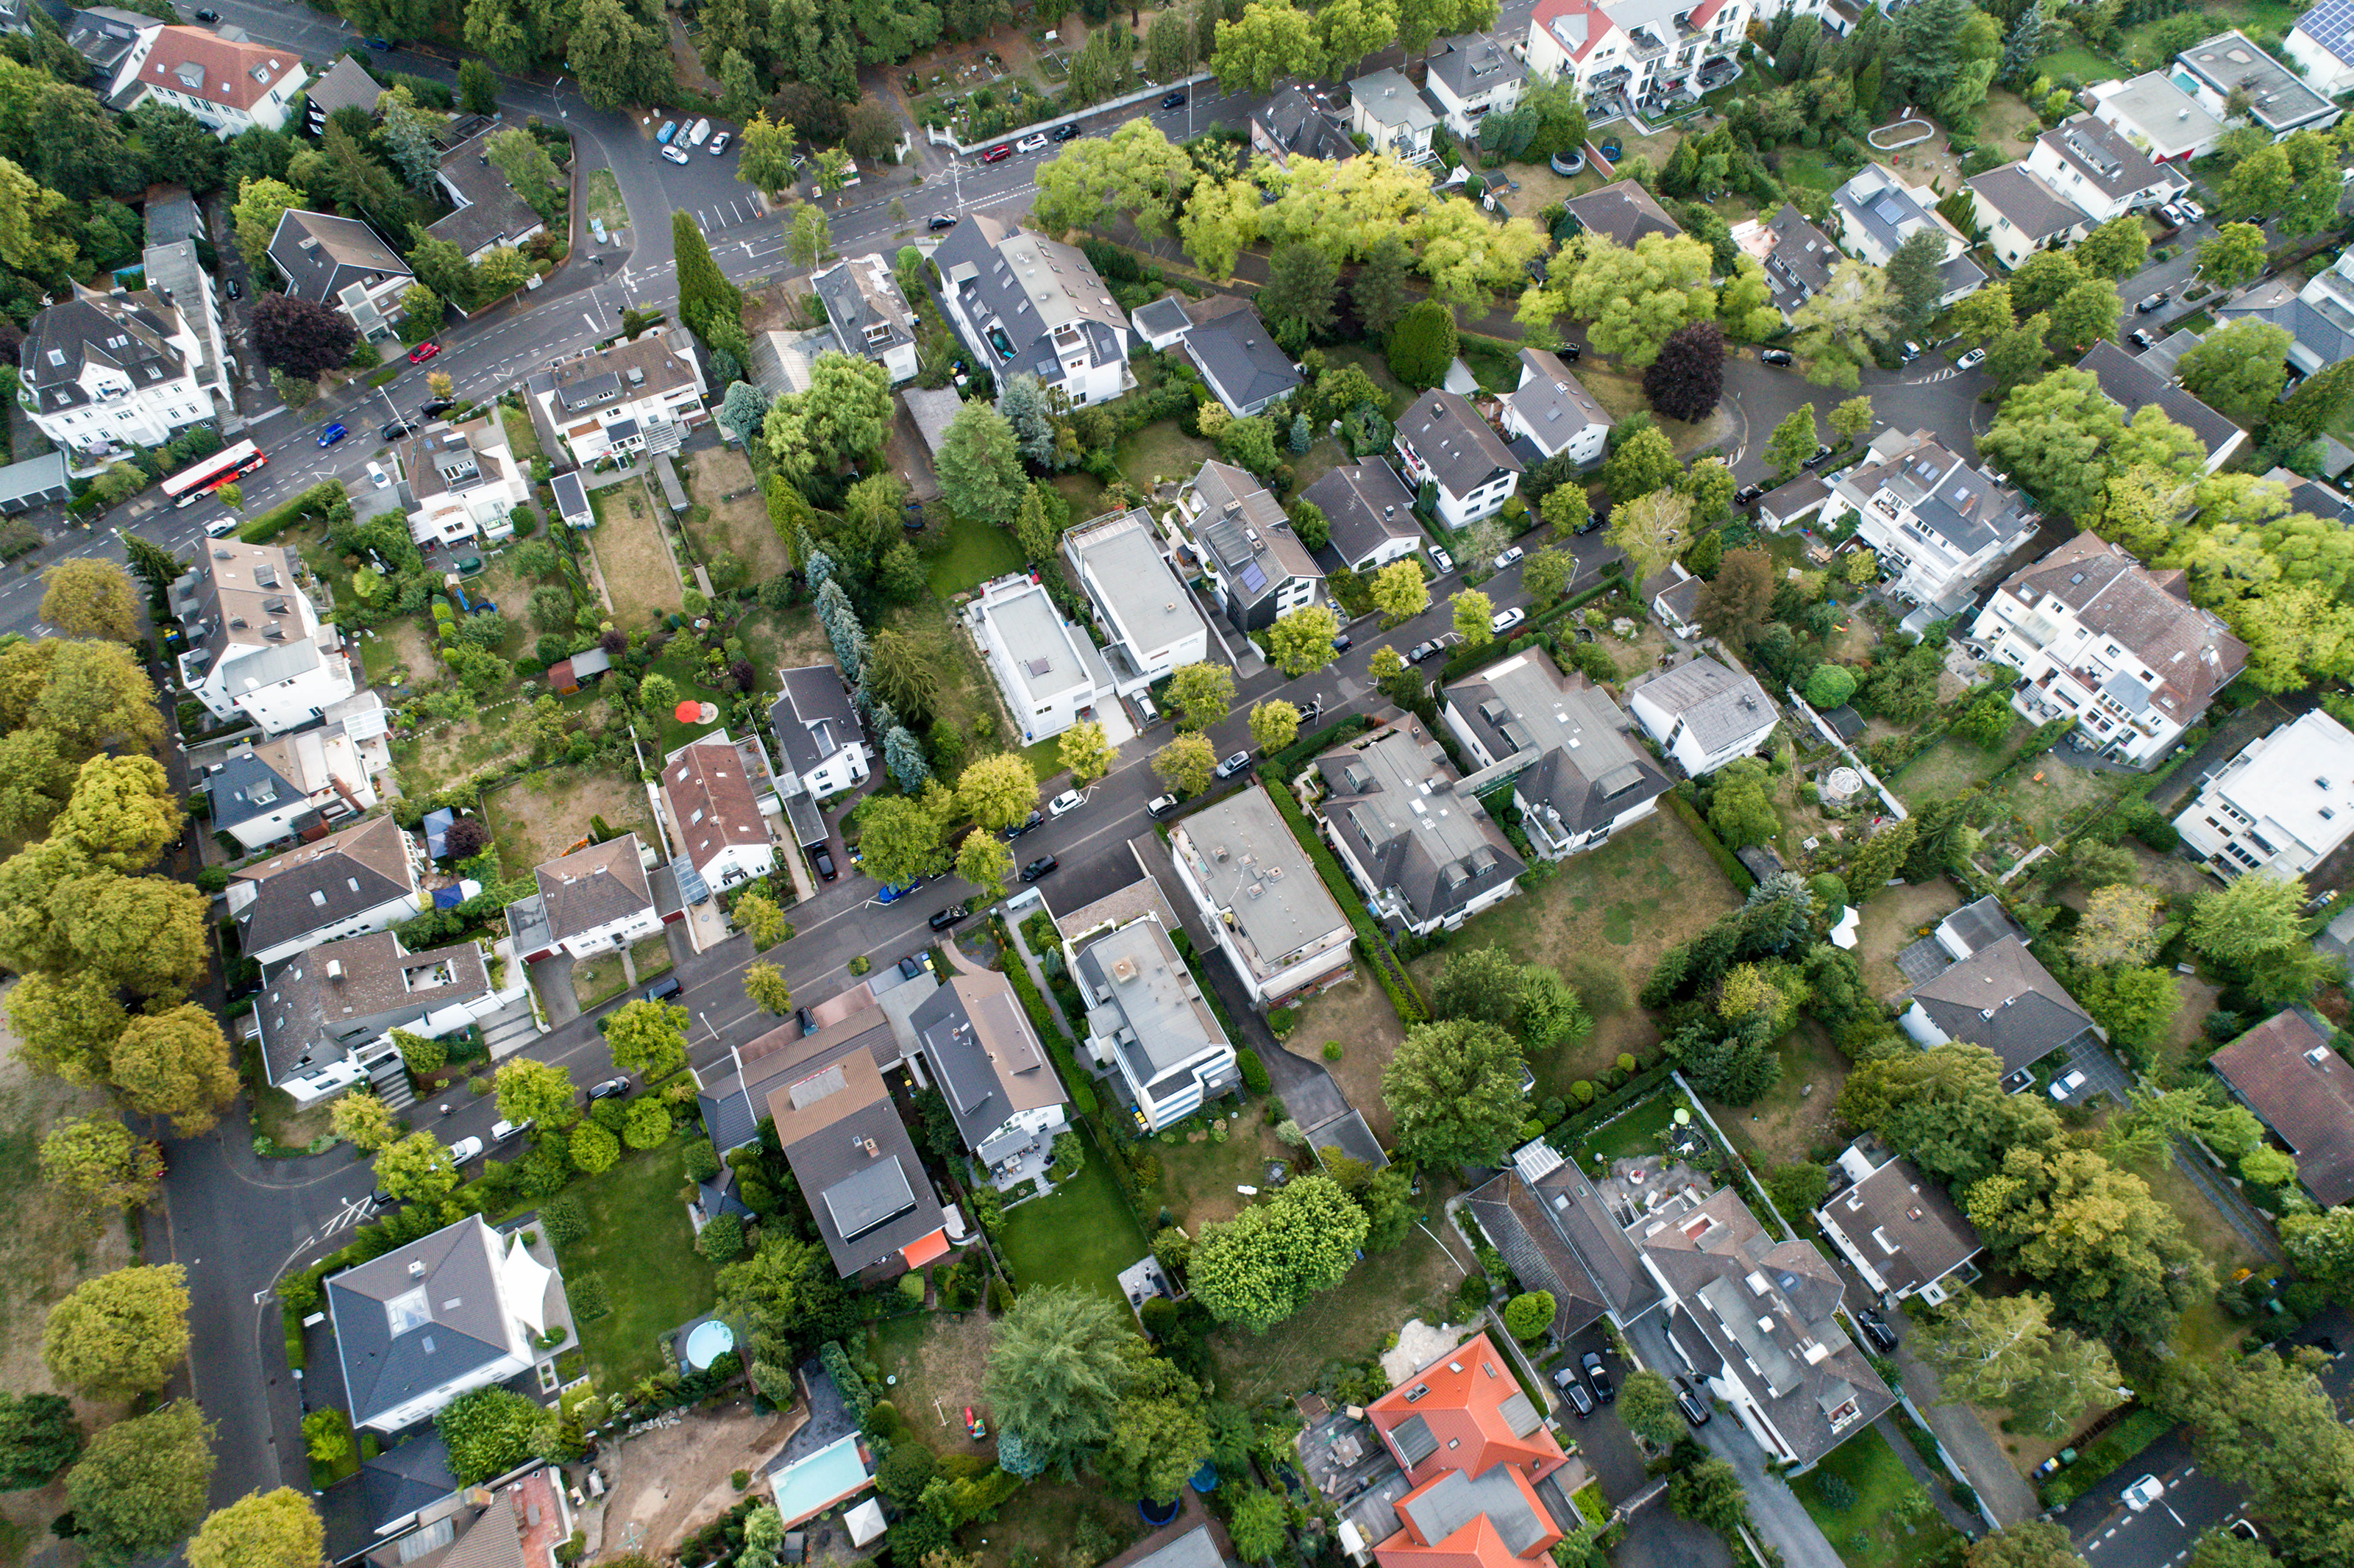 Aerial drone view of streets in Bonn bad godesberg, the former capital of Germany with a typical german house neighbourhood